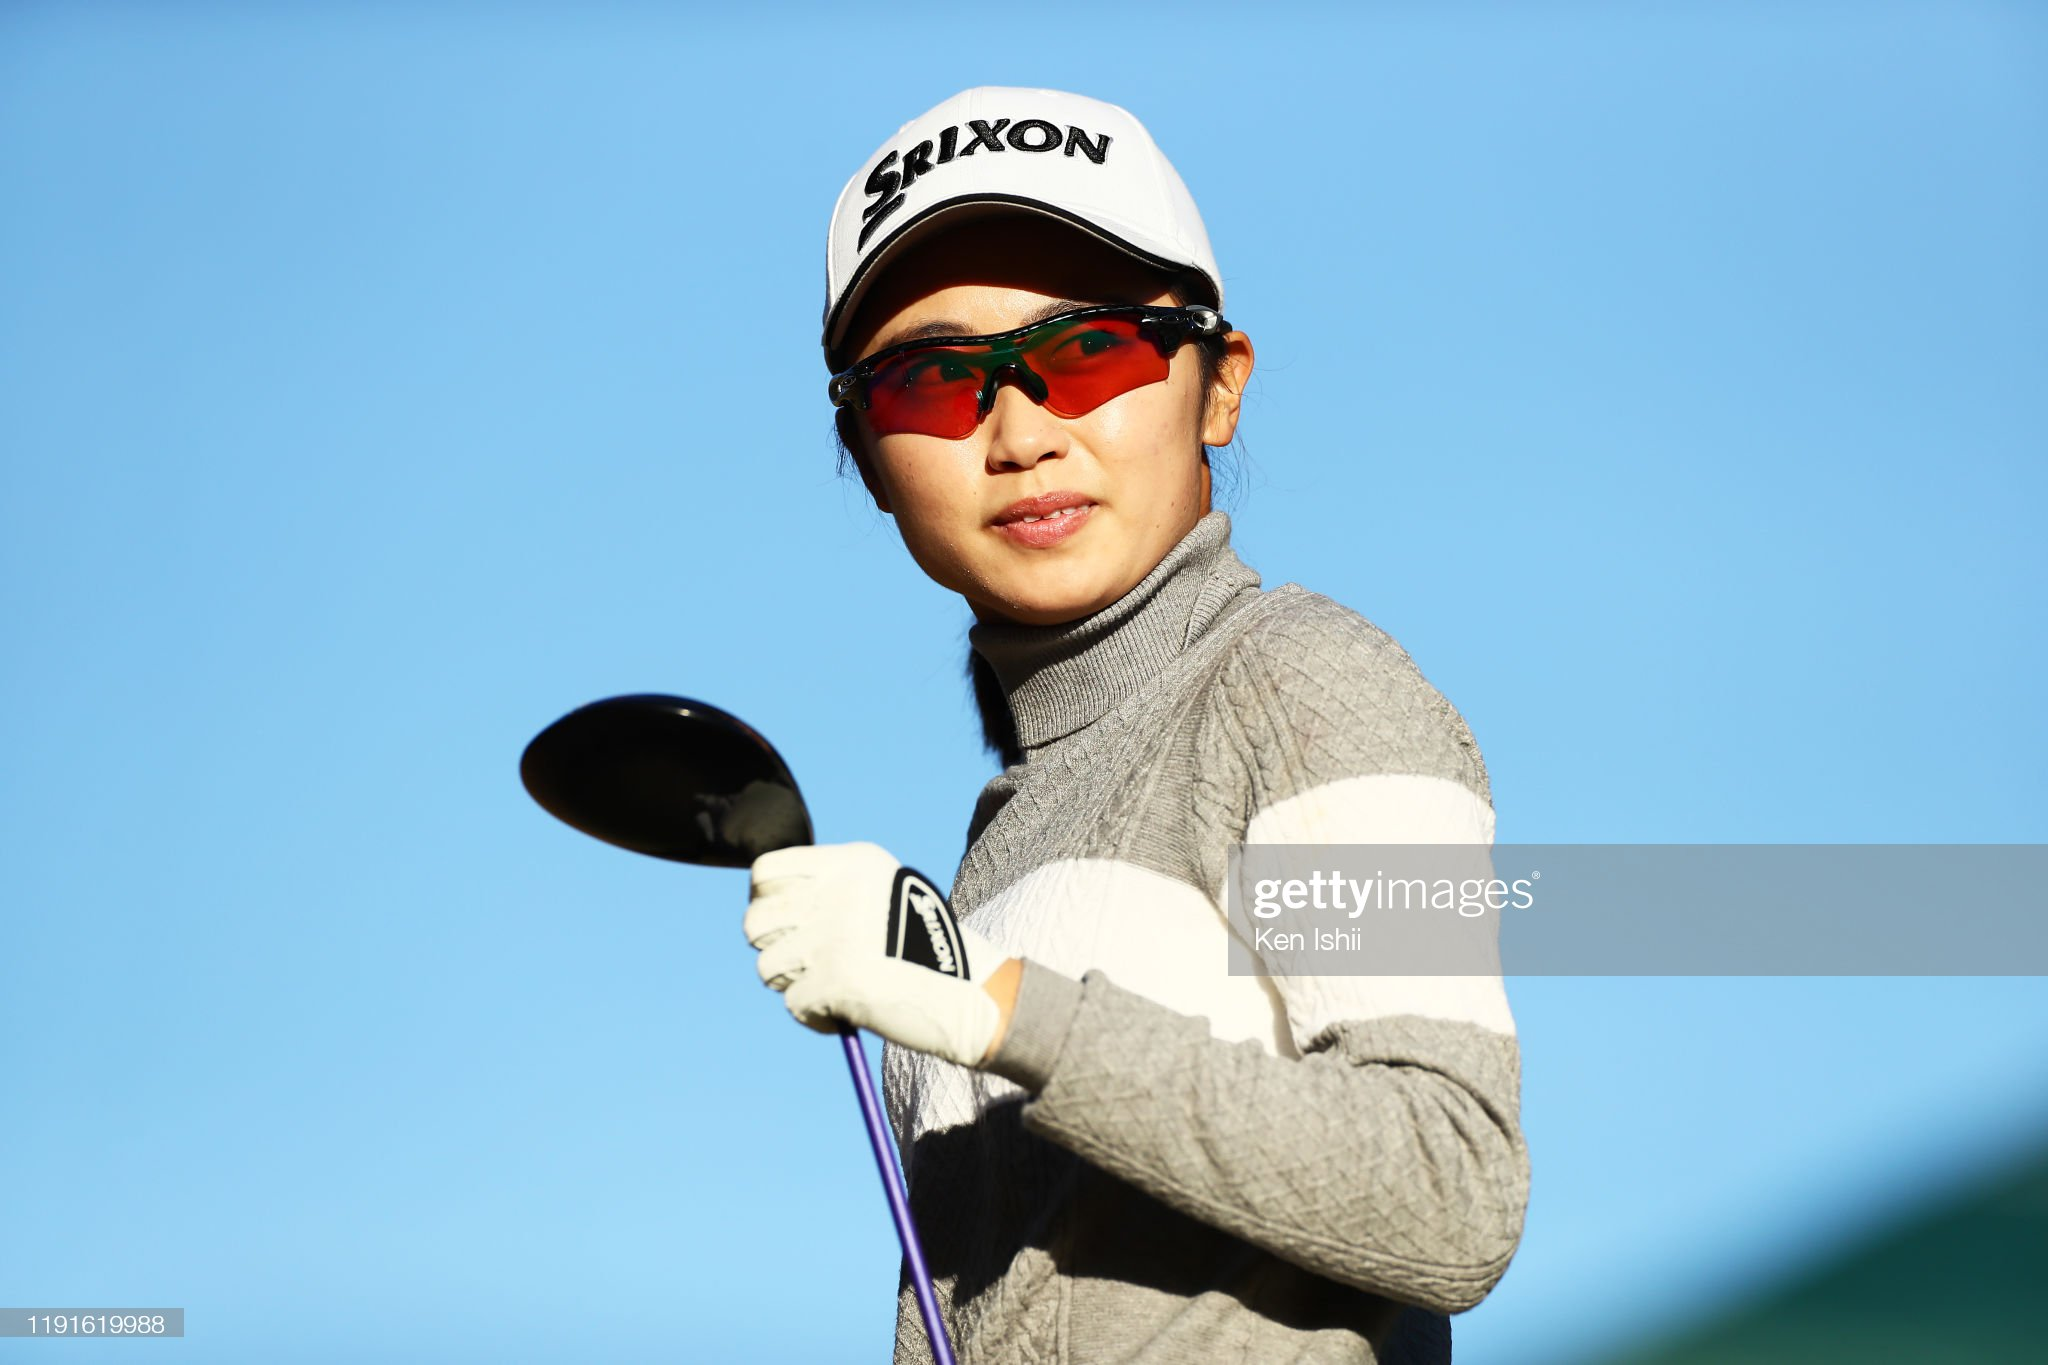 https://media.gettyimages.com/photos/yuka-yasuda-of-japan-hits-a-tee-shot-on-the-10th-hole-during-the-of-picture-id1191619988?s=2048x2048